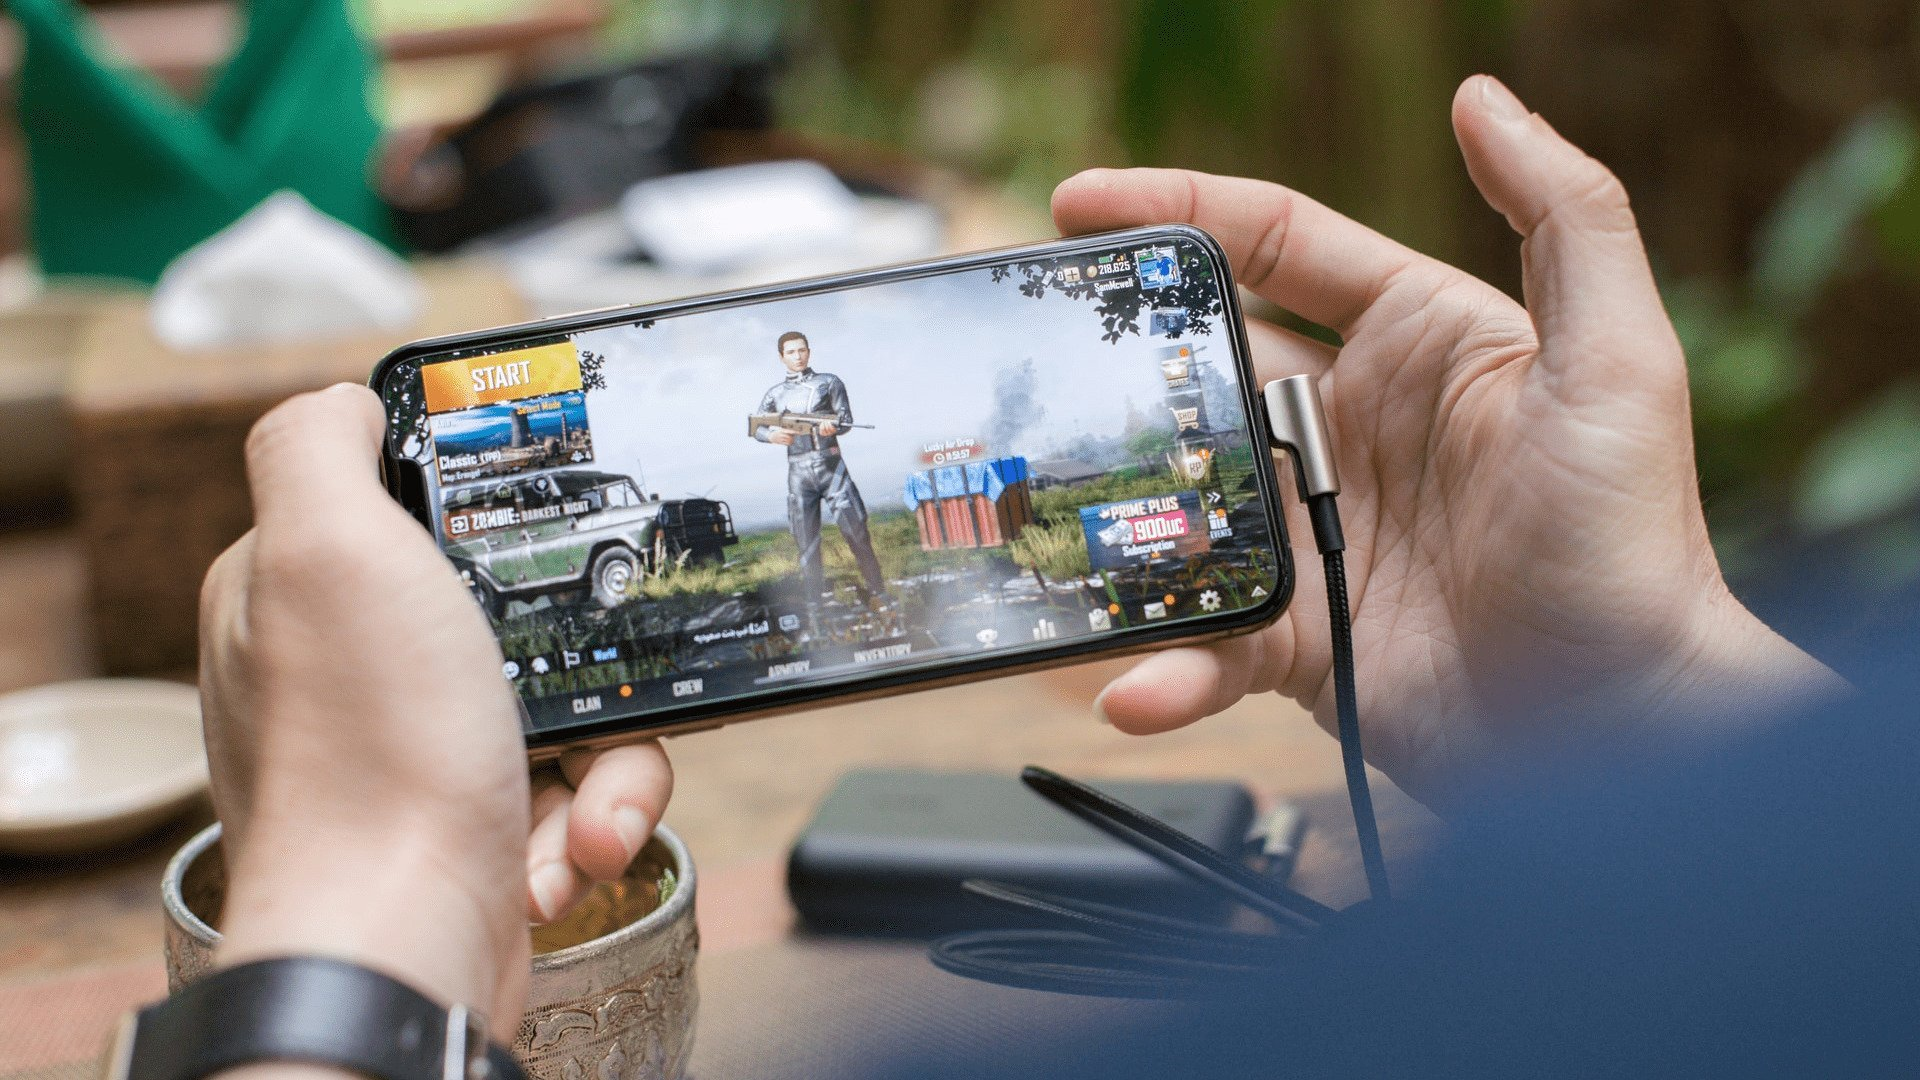 Gaming Smartphone / Photo by SCREEN POST on Unsplash